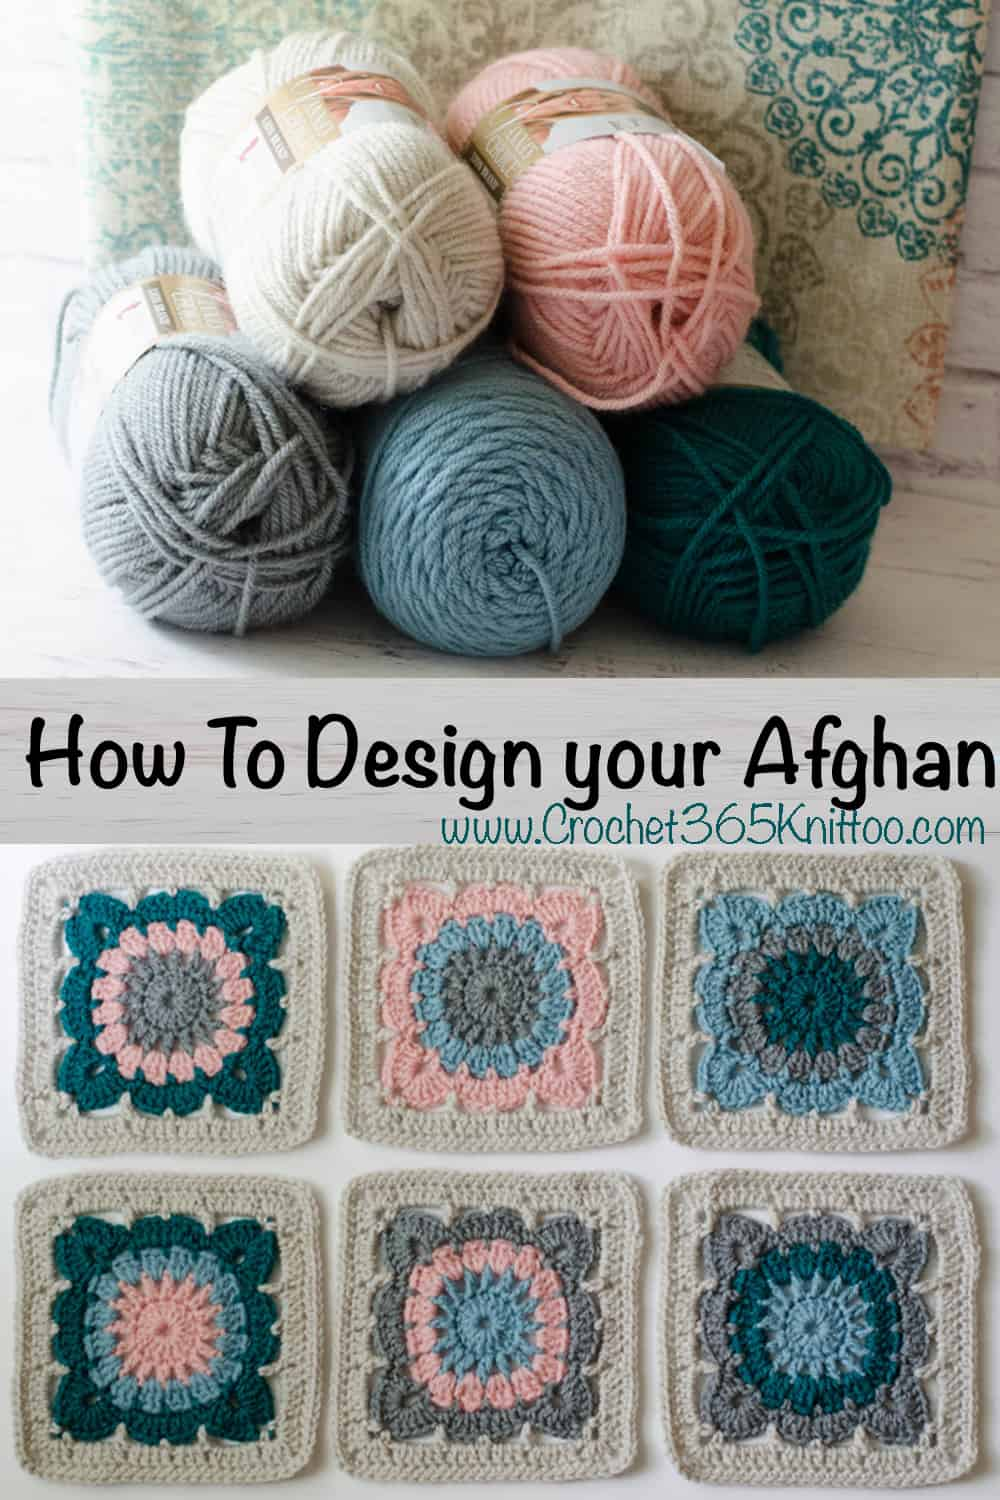 teal, pink, gray, blue and off white yarn and crochet afghan squares